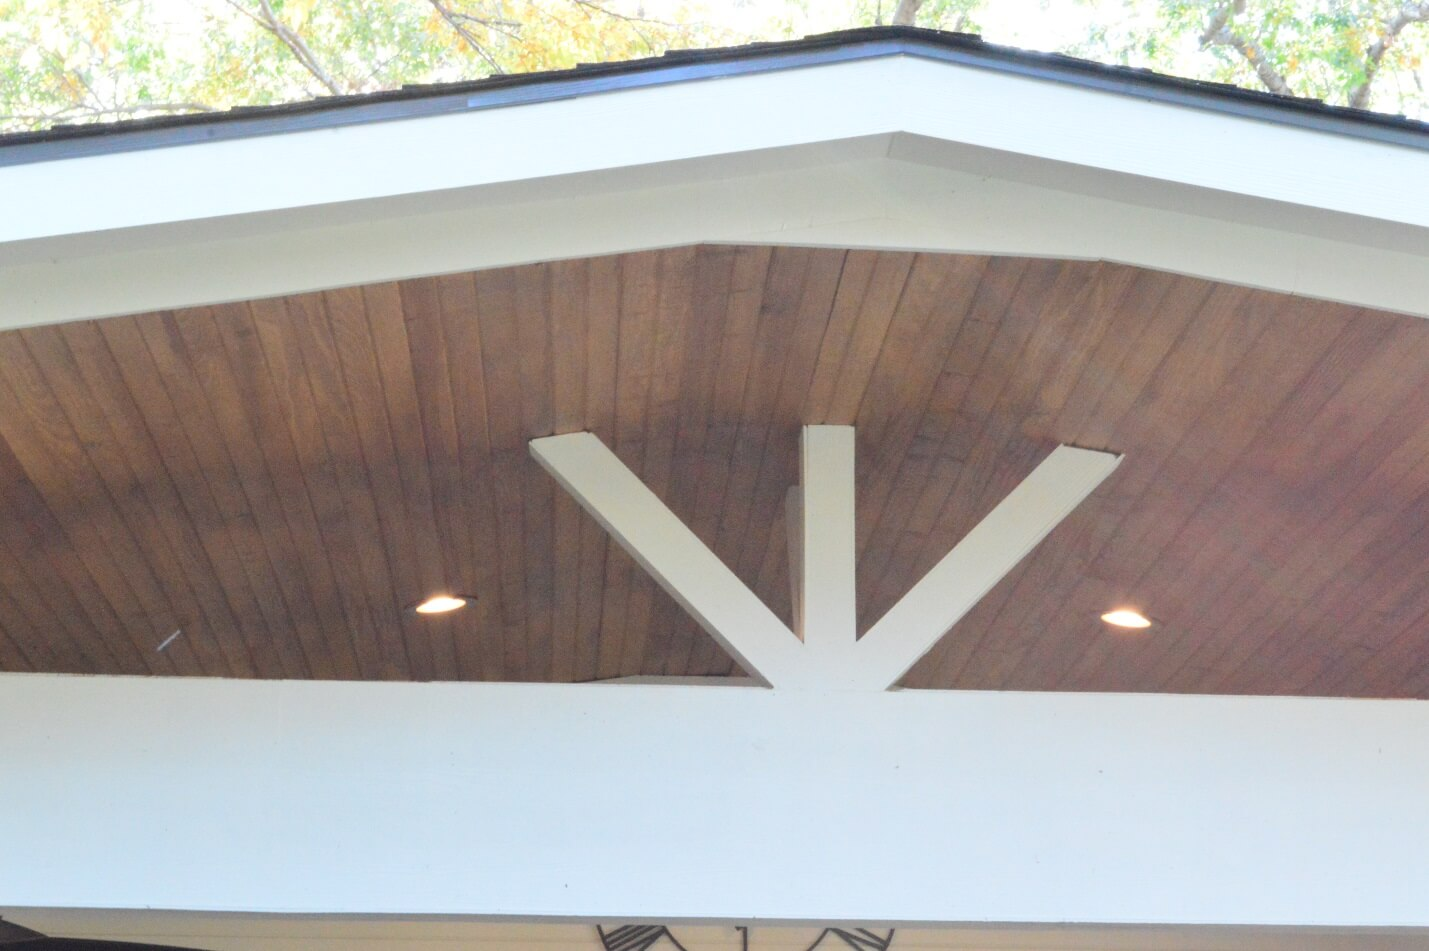 Custom Patio Cover With Tongue And Groove Ceiling With Recessed Lighting